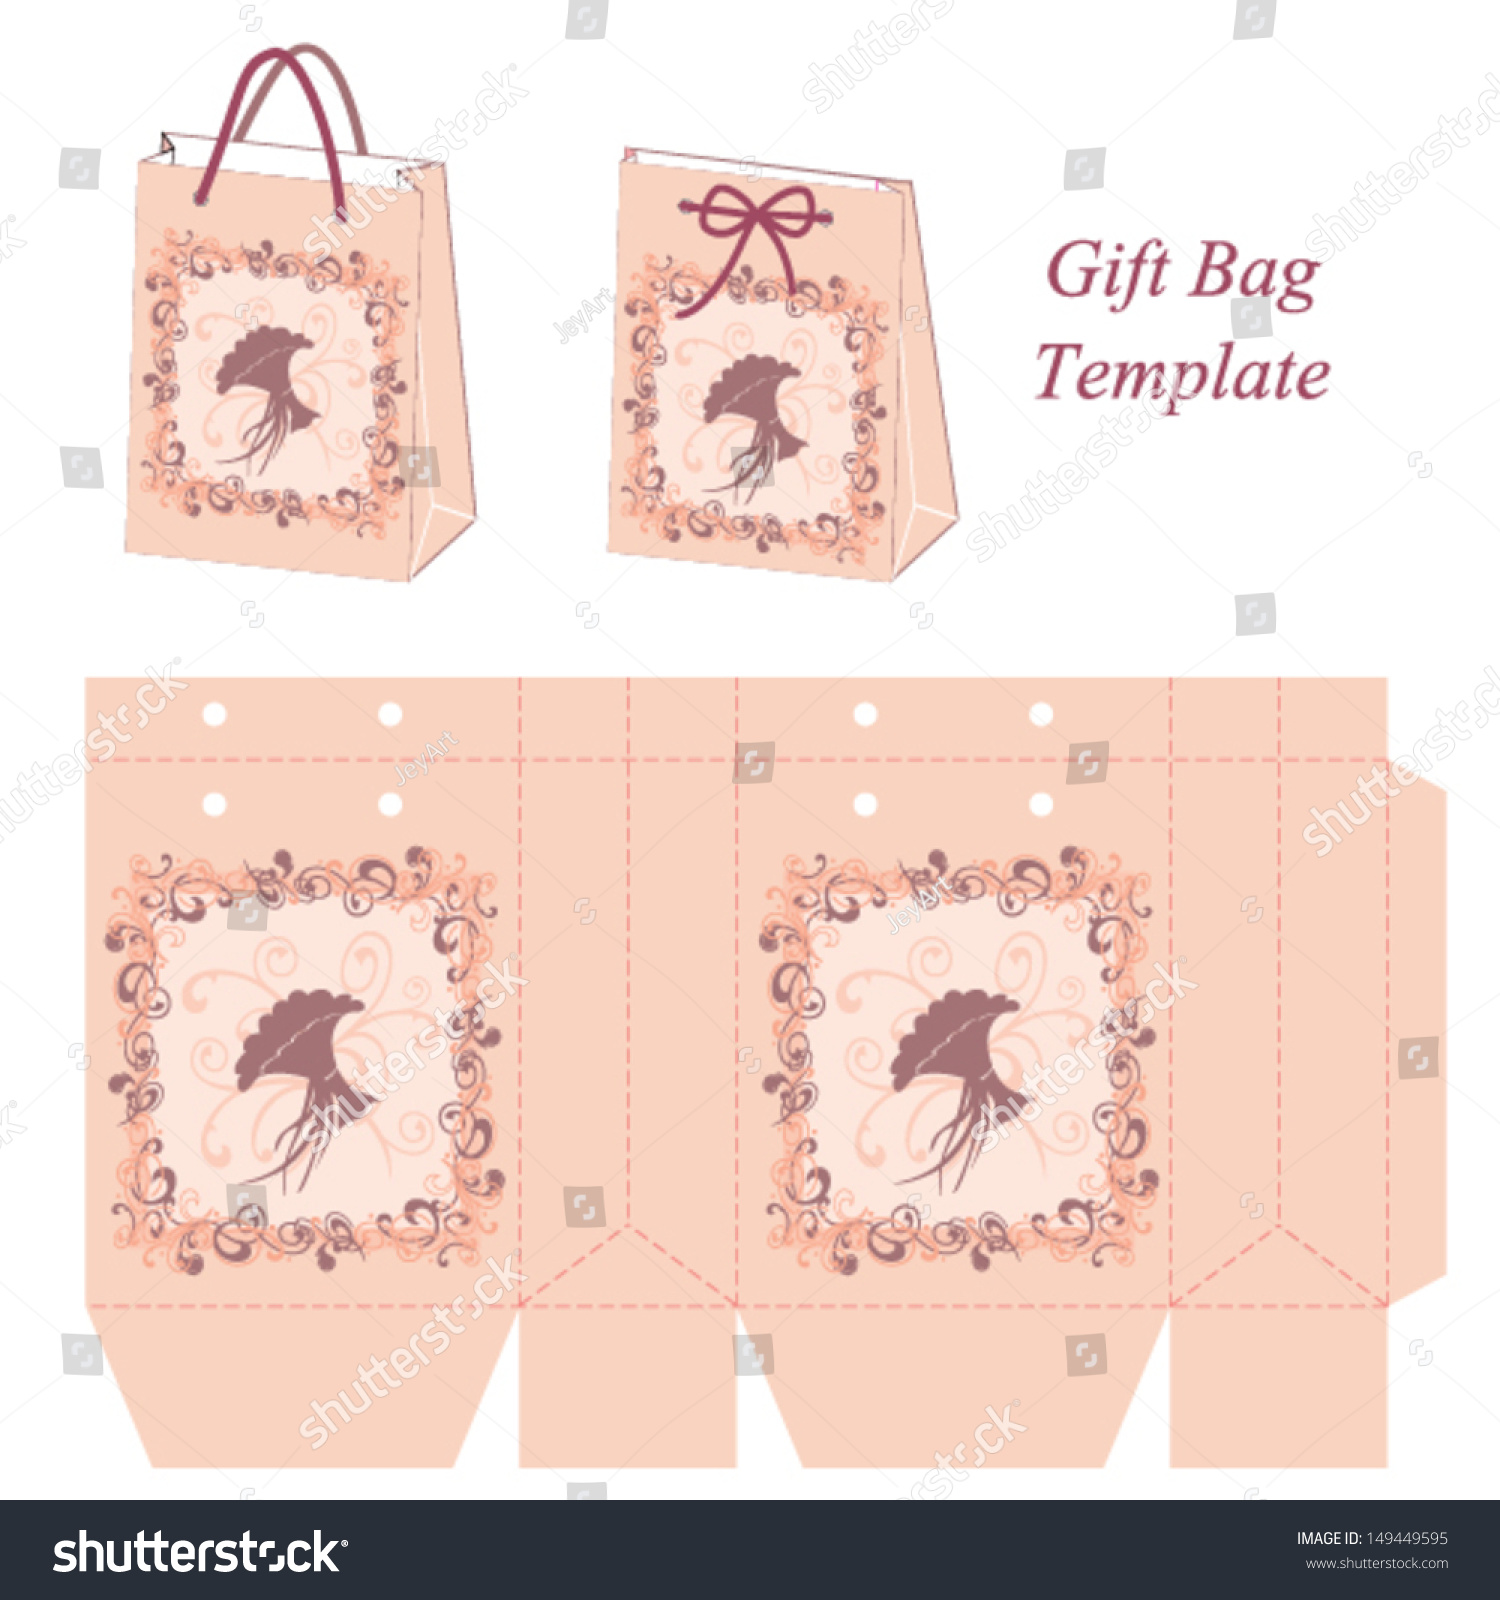 Pink Gift Bag Template Decorative Frame Stock Vector Royalty Free